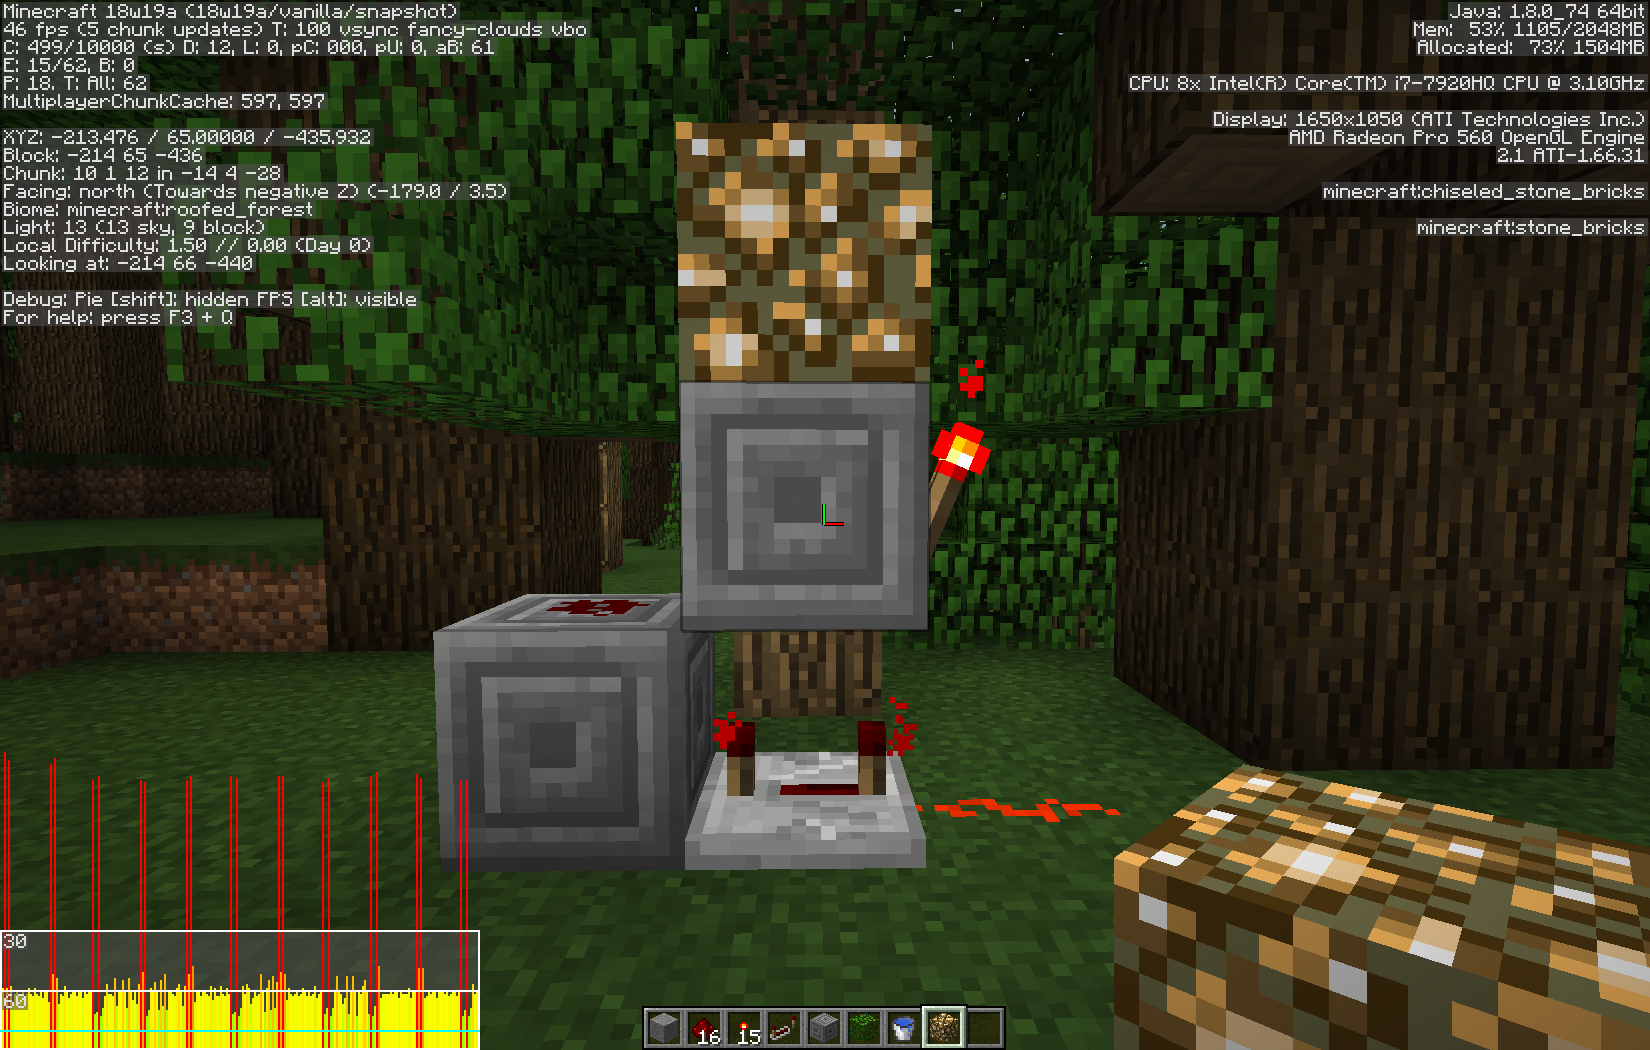 Mc 126518 Redstone Or Lighting Updates Causing Severe Lag And Minecraft Circuits Roofed Forest 15x15